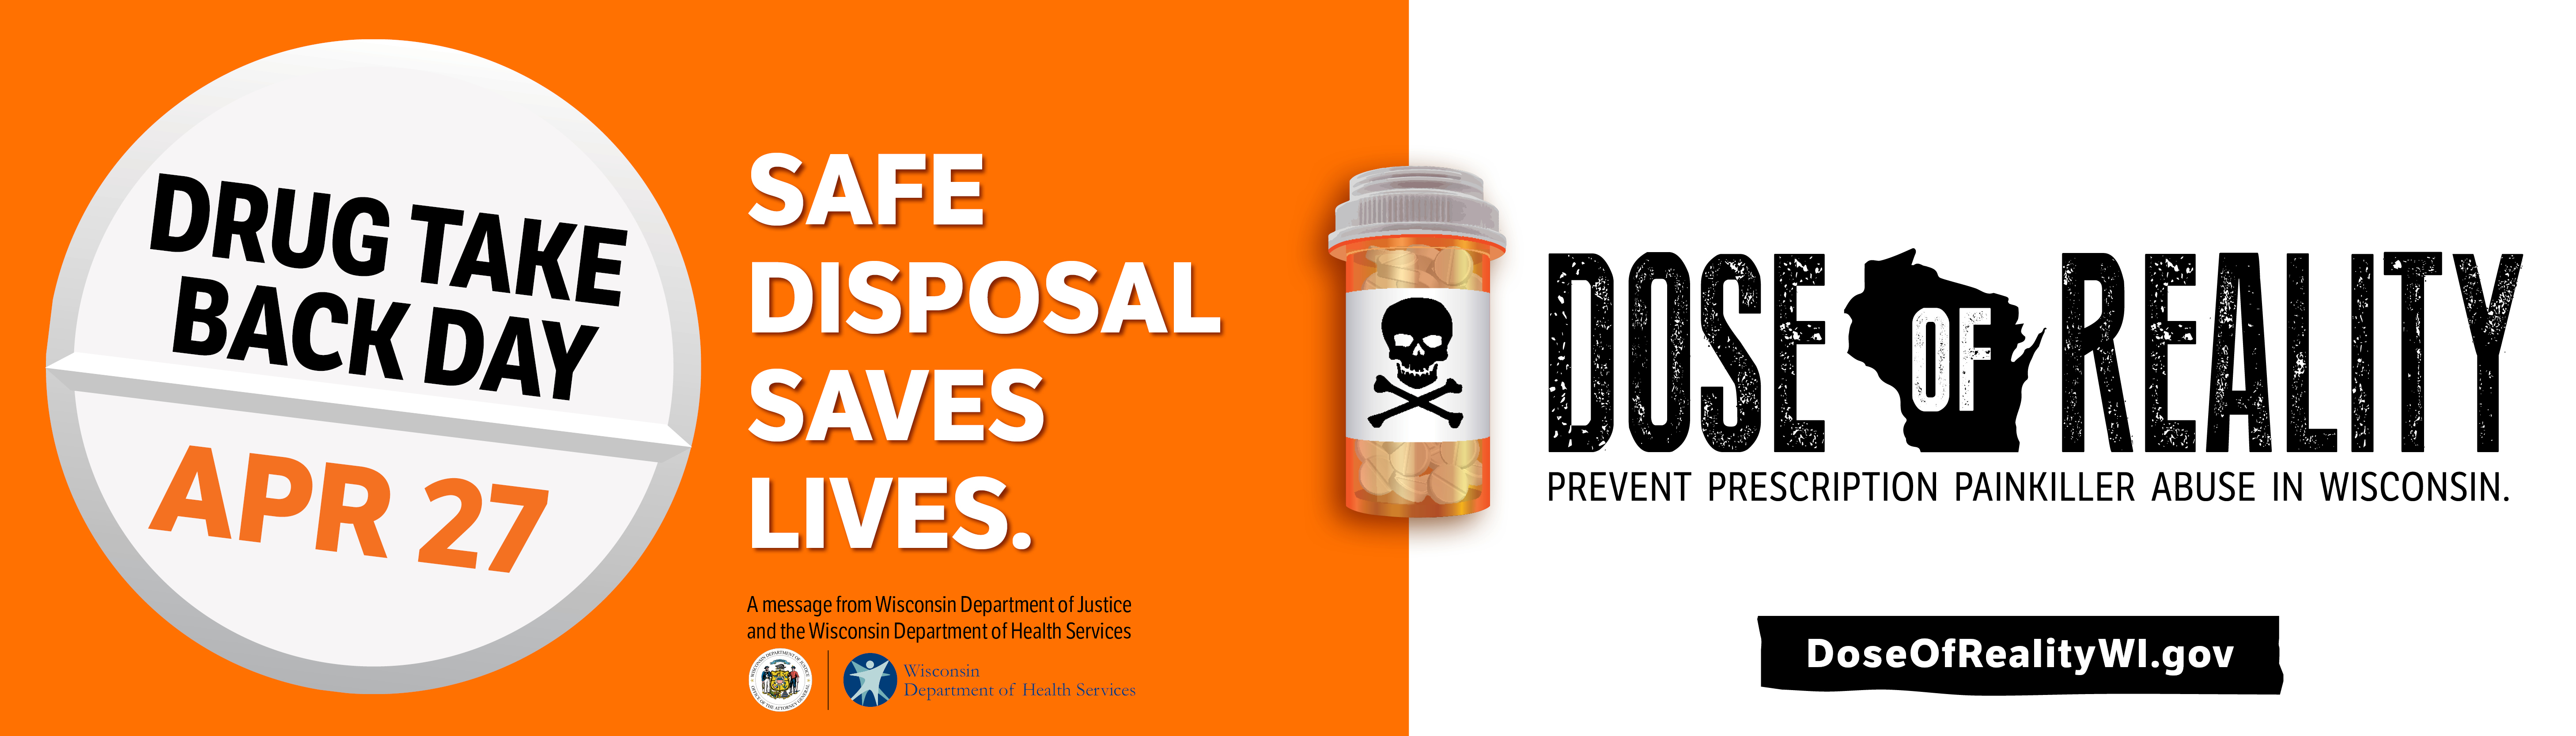 Don't Be an Accidental Drug Dealer :: How You Can Help Prevent